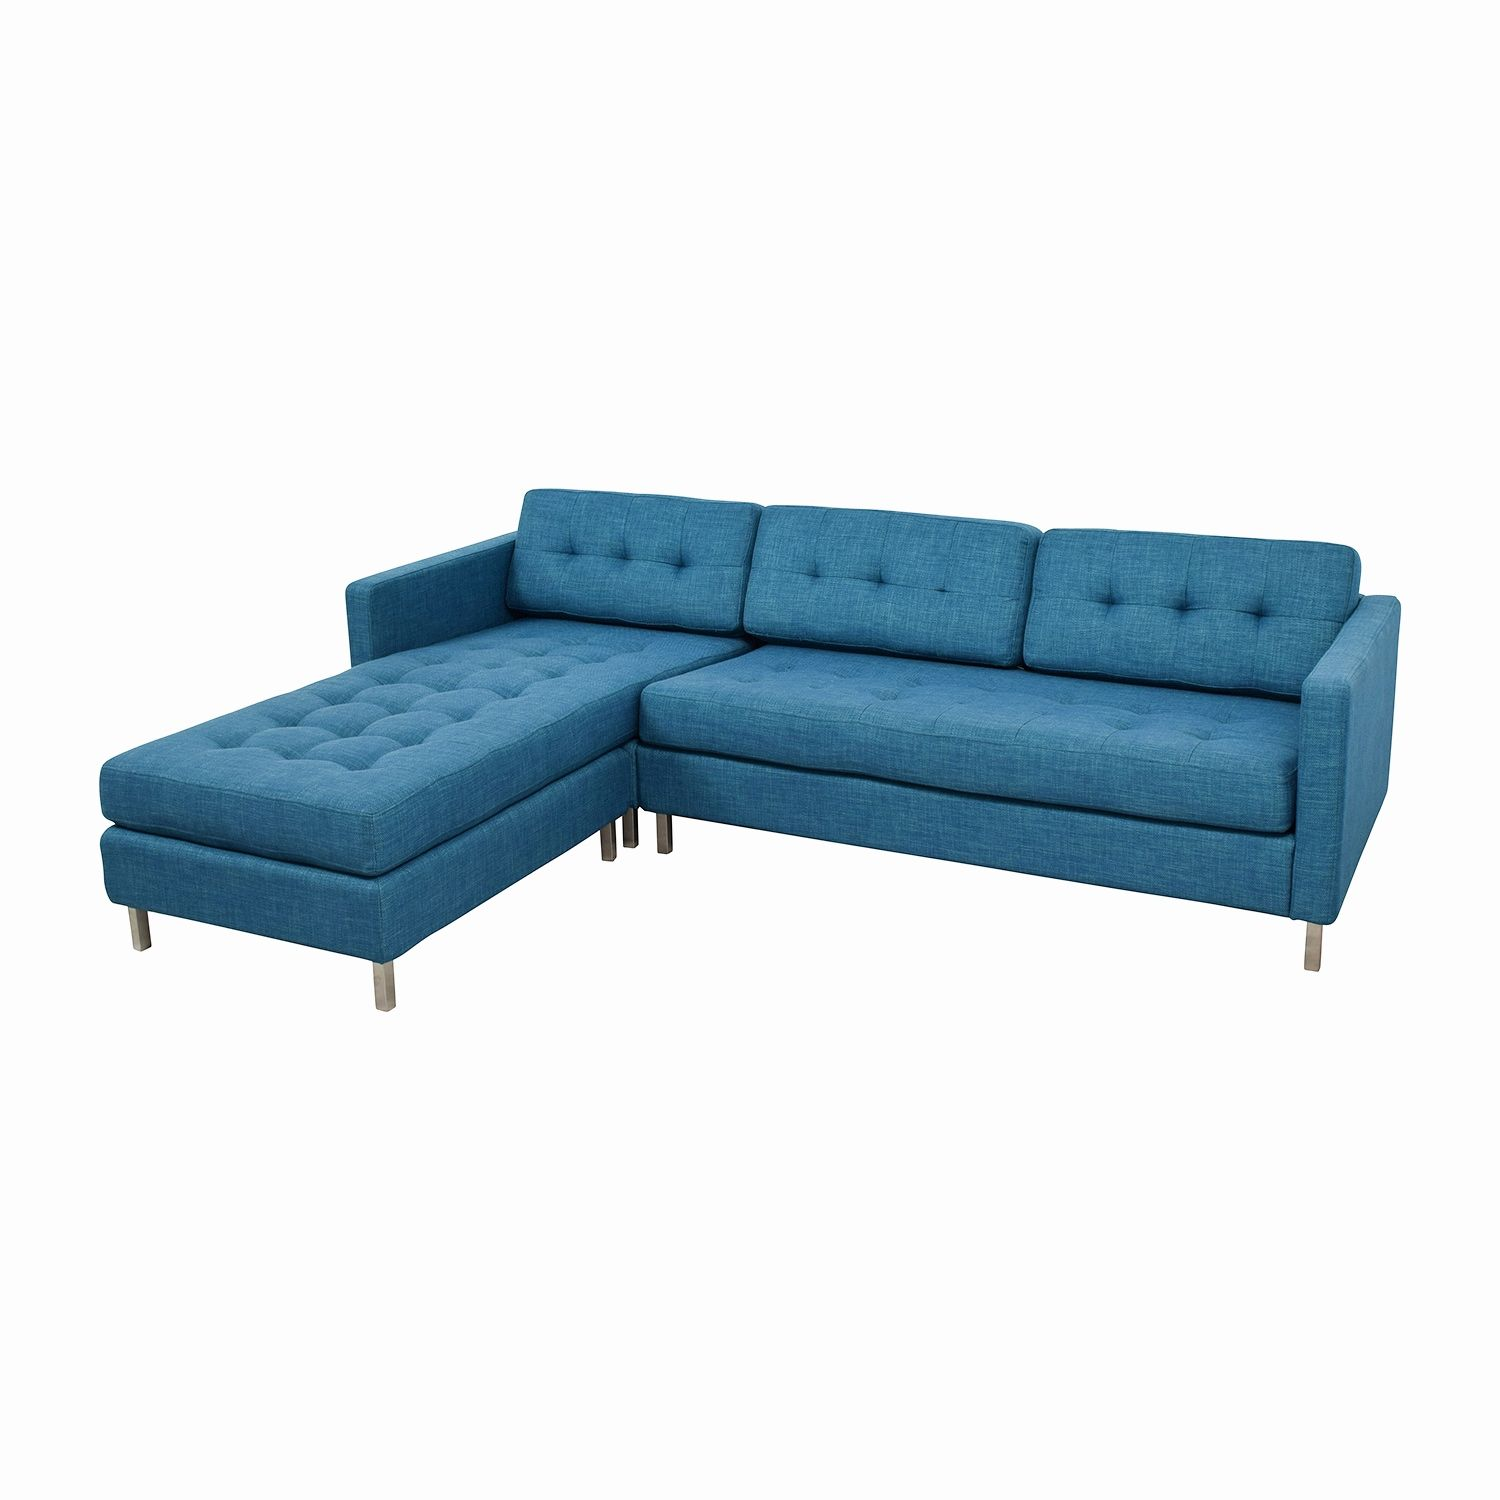 Luxury teal sectional sofa graphics teal sectional sofa luxury 33 off cb2 cb2 ditto ii peacock sectional sofa sofas